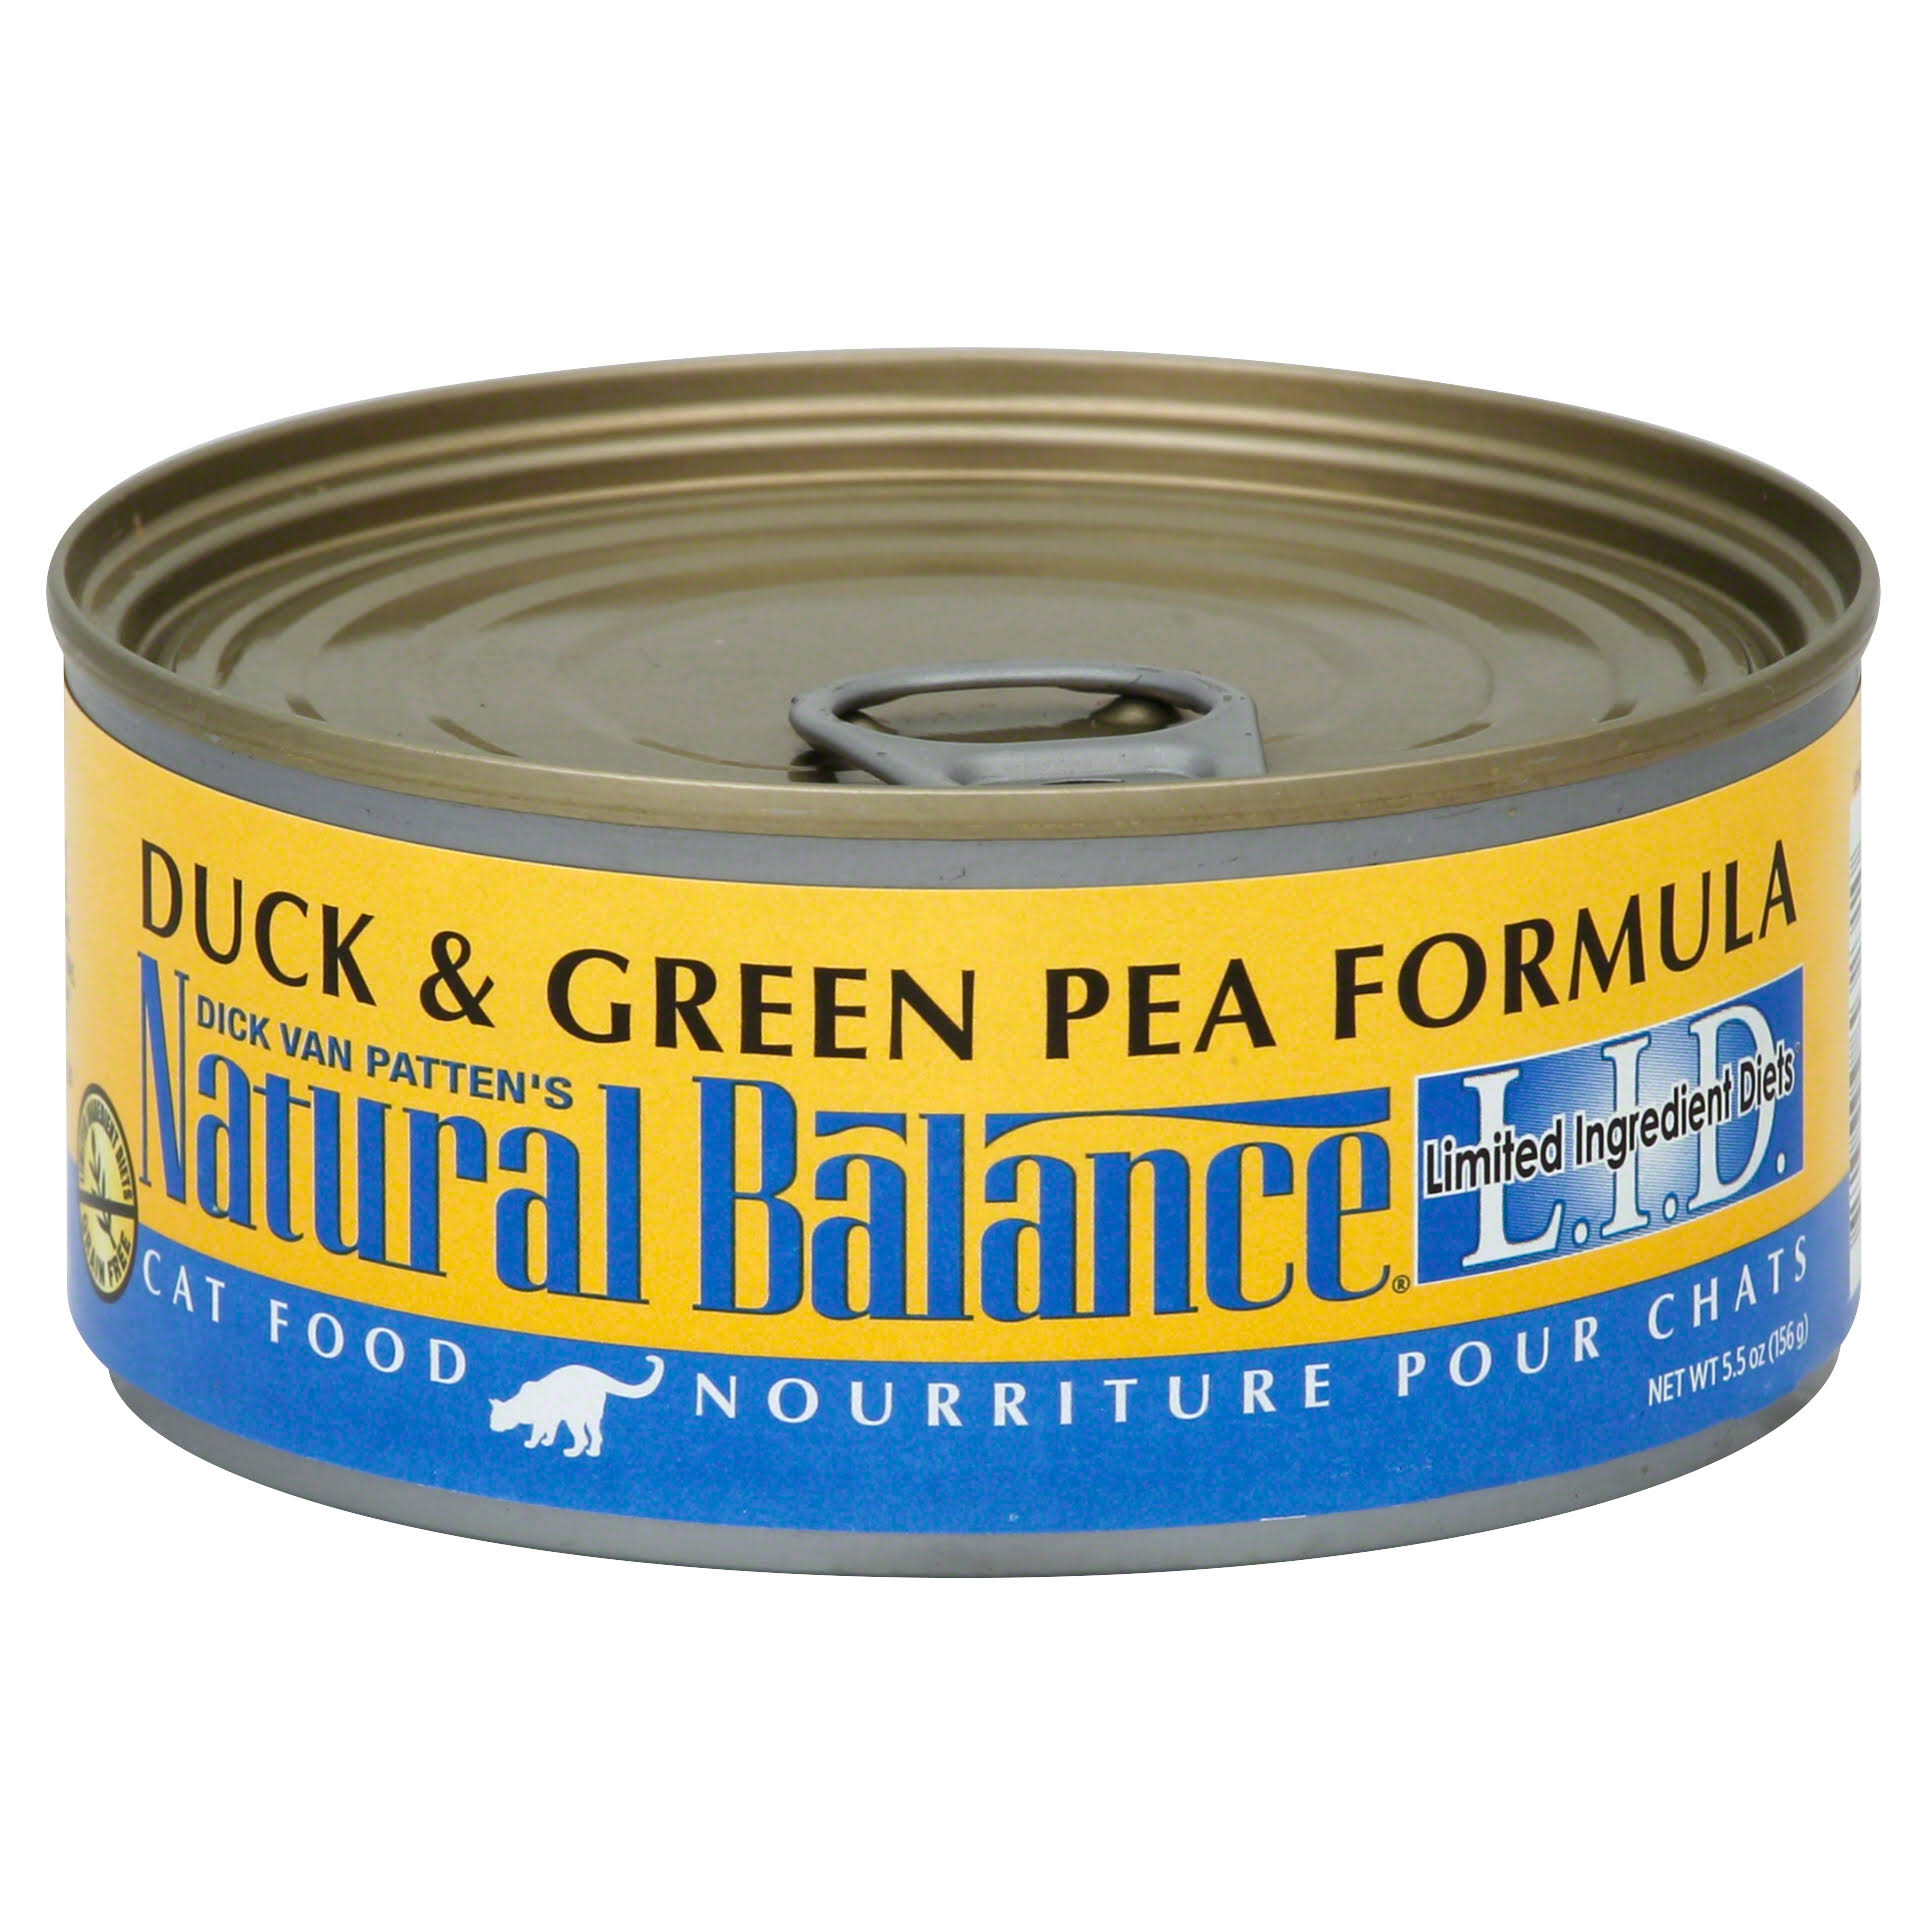 Natural Balance LID Grain Free Canned Cat Food - Duck & Green Pea